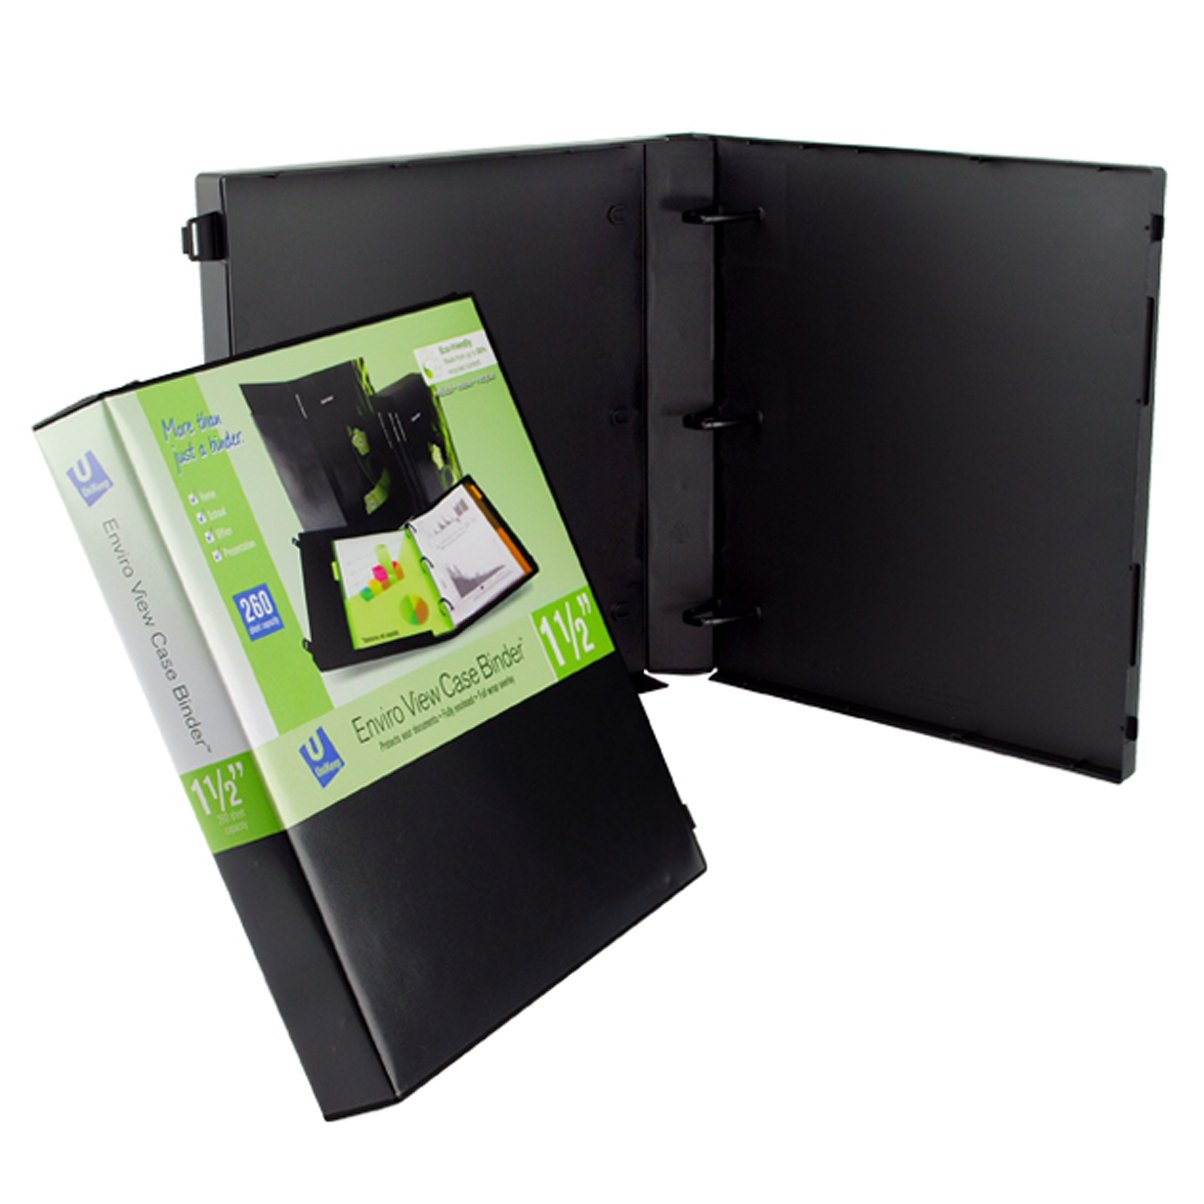 UniKeep 3 Ring Binder - Black - Case View Binder - 1.5 Inch Spine - With Clear Outer Overlay - Box of 15 Binders